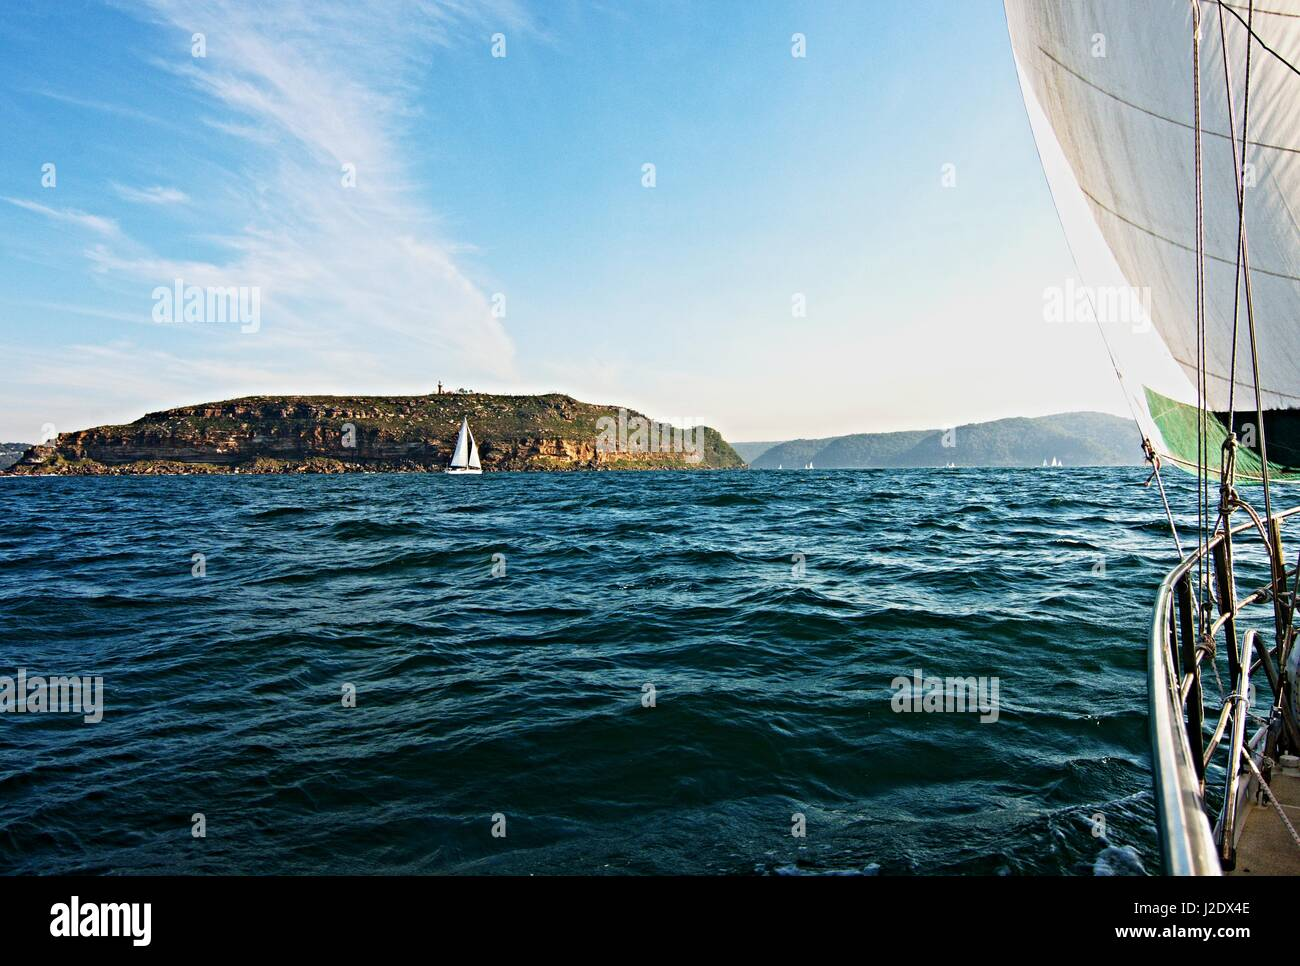 Cruising Sailing Yacht, under sail,  at sea heading to the safe harbour of Broken Bay, New South Wales, Australia. - Stock Image